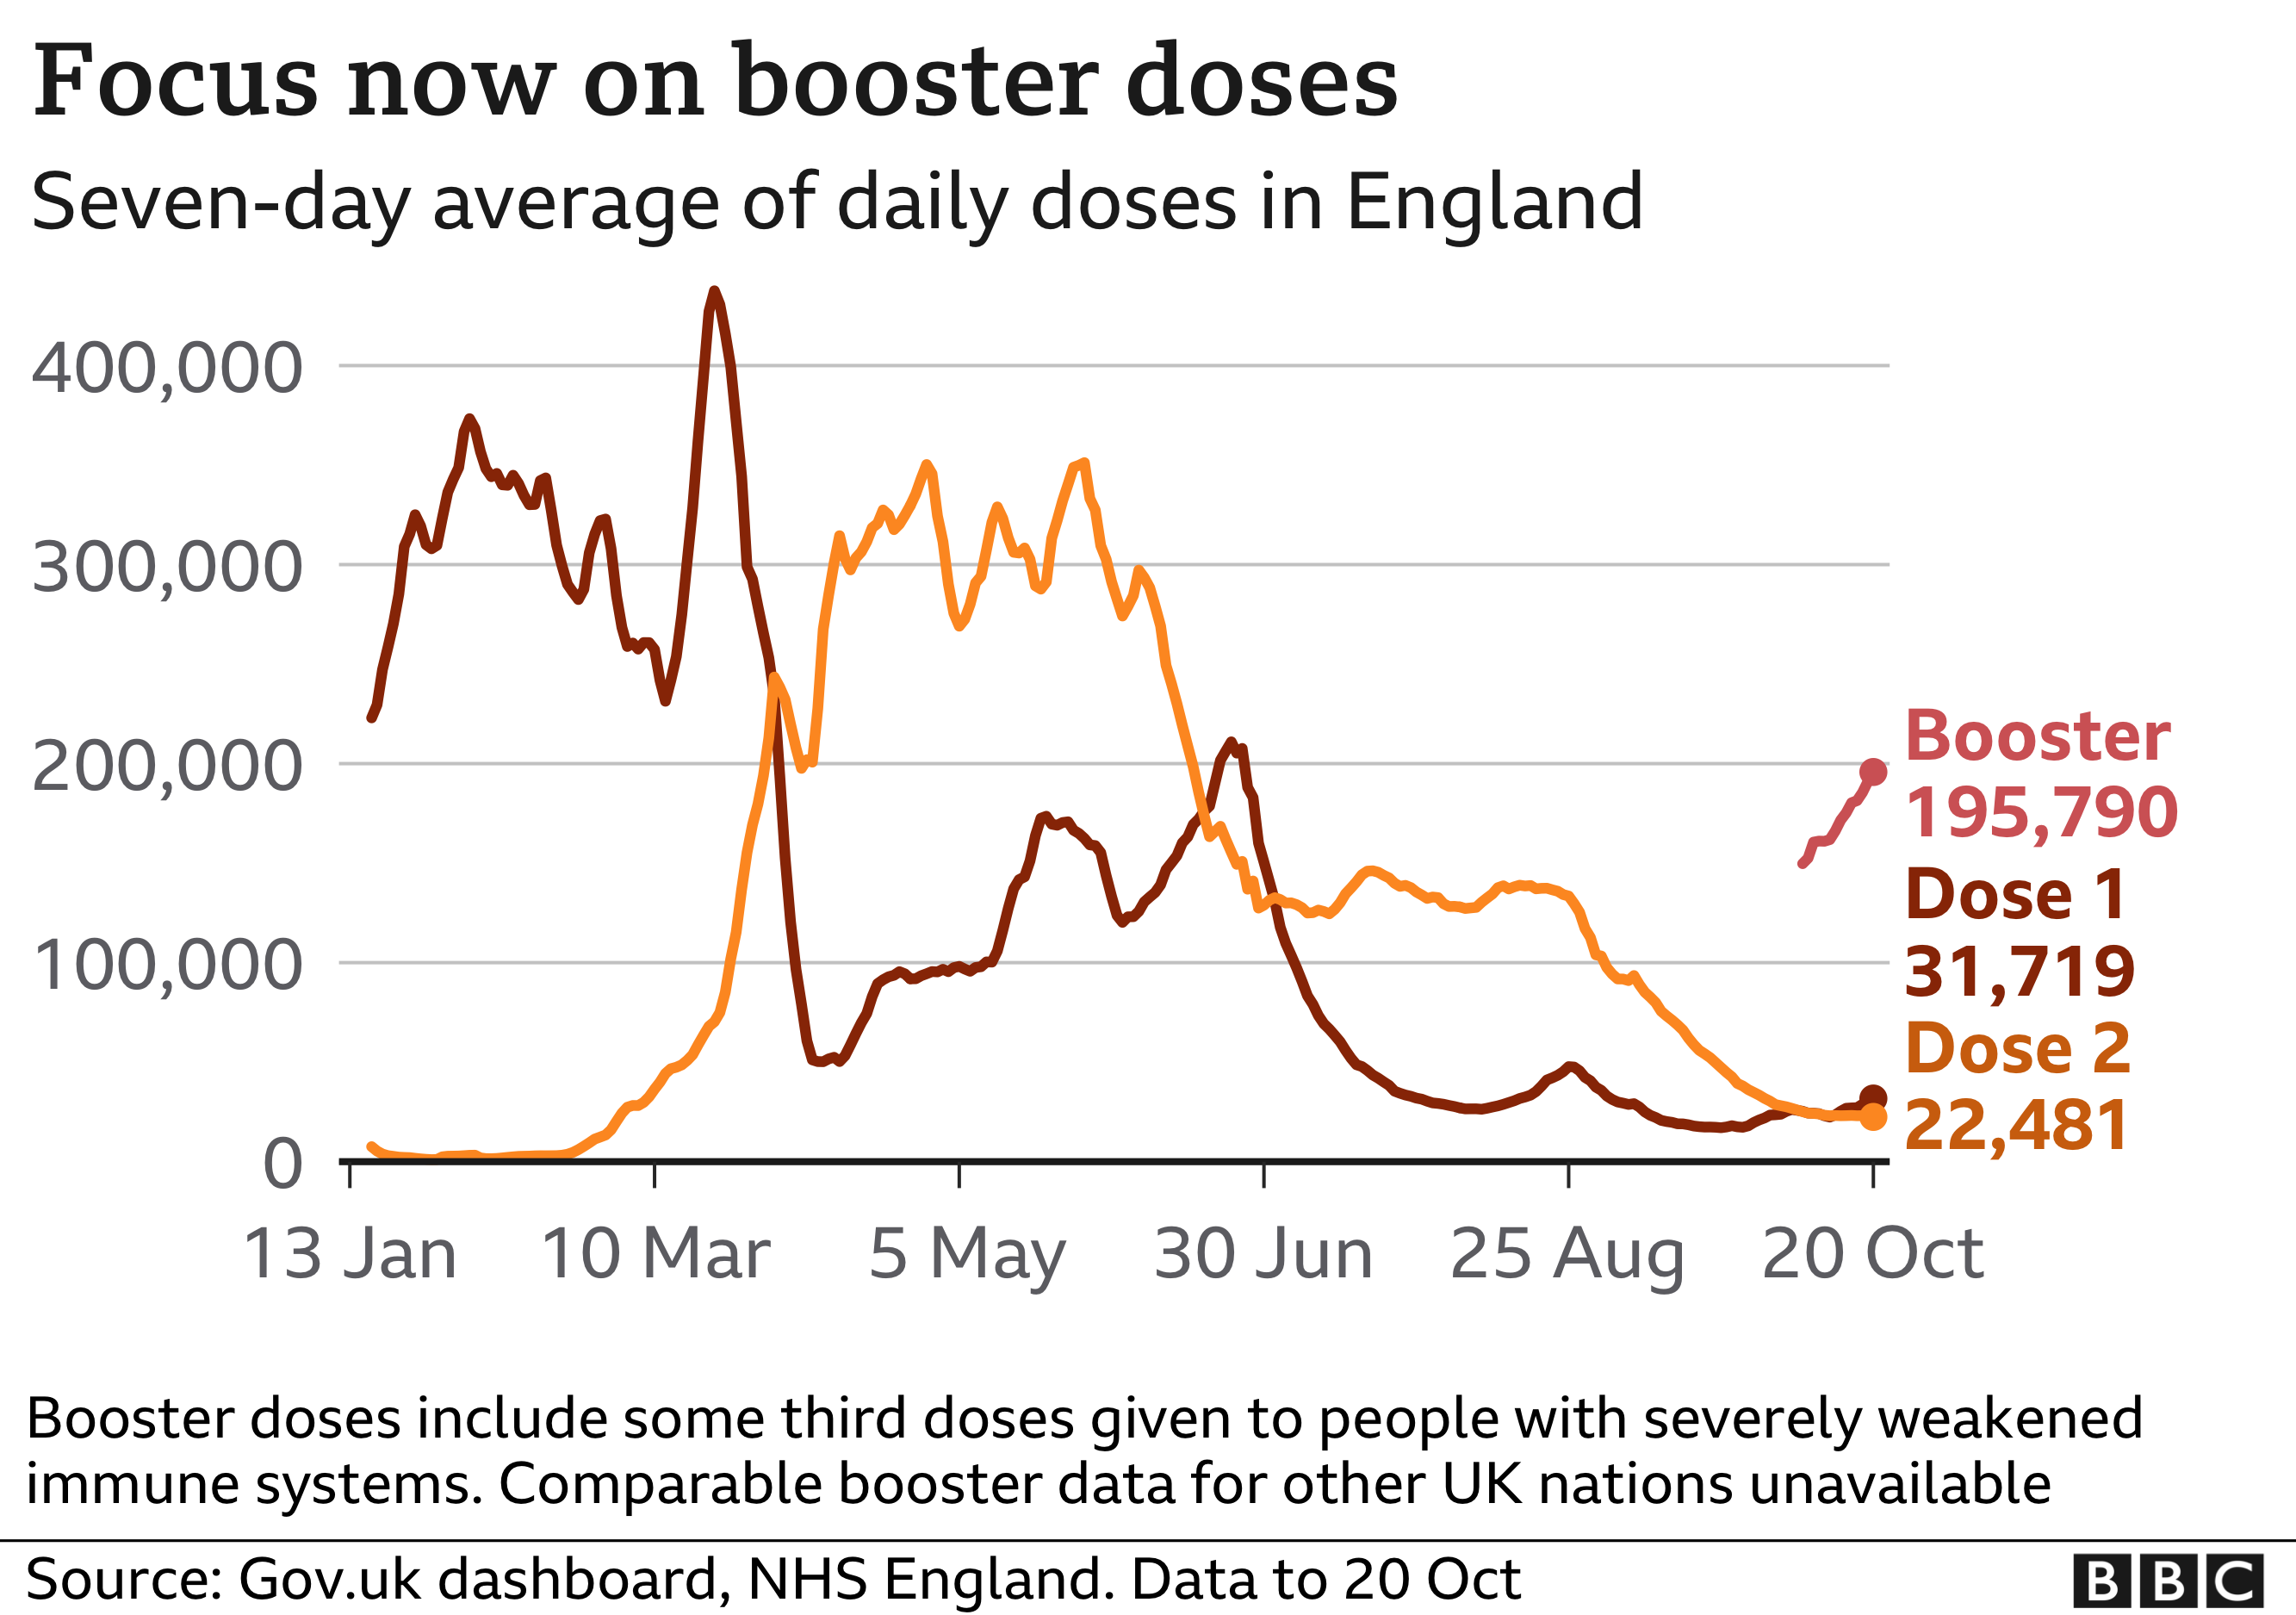 Chart showing that while the number of first and second vaccine doses being administered is now low in England, the number of daily booster doses is rising quickly